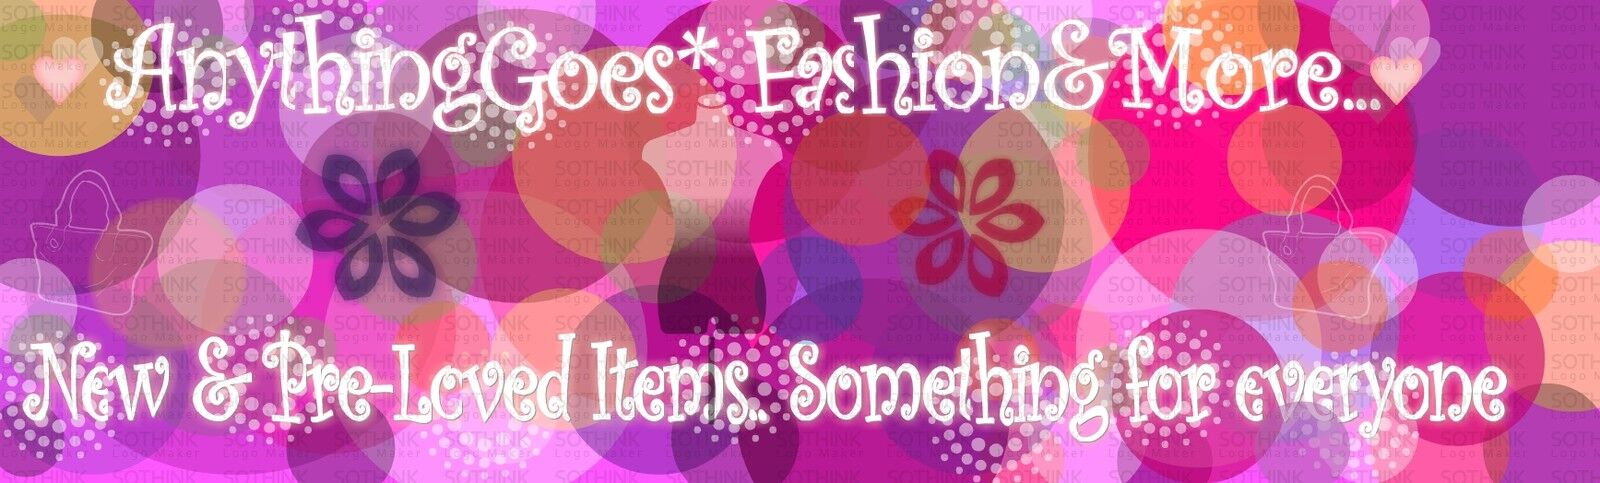 AnythingGoes*Fashion&More